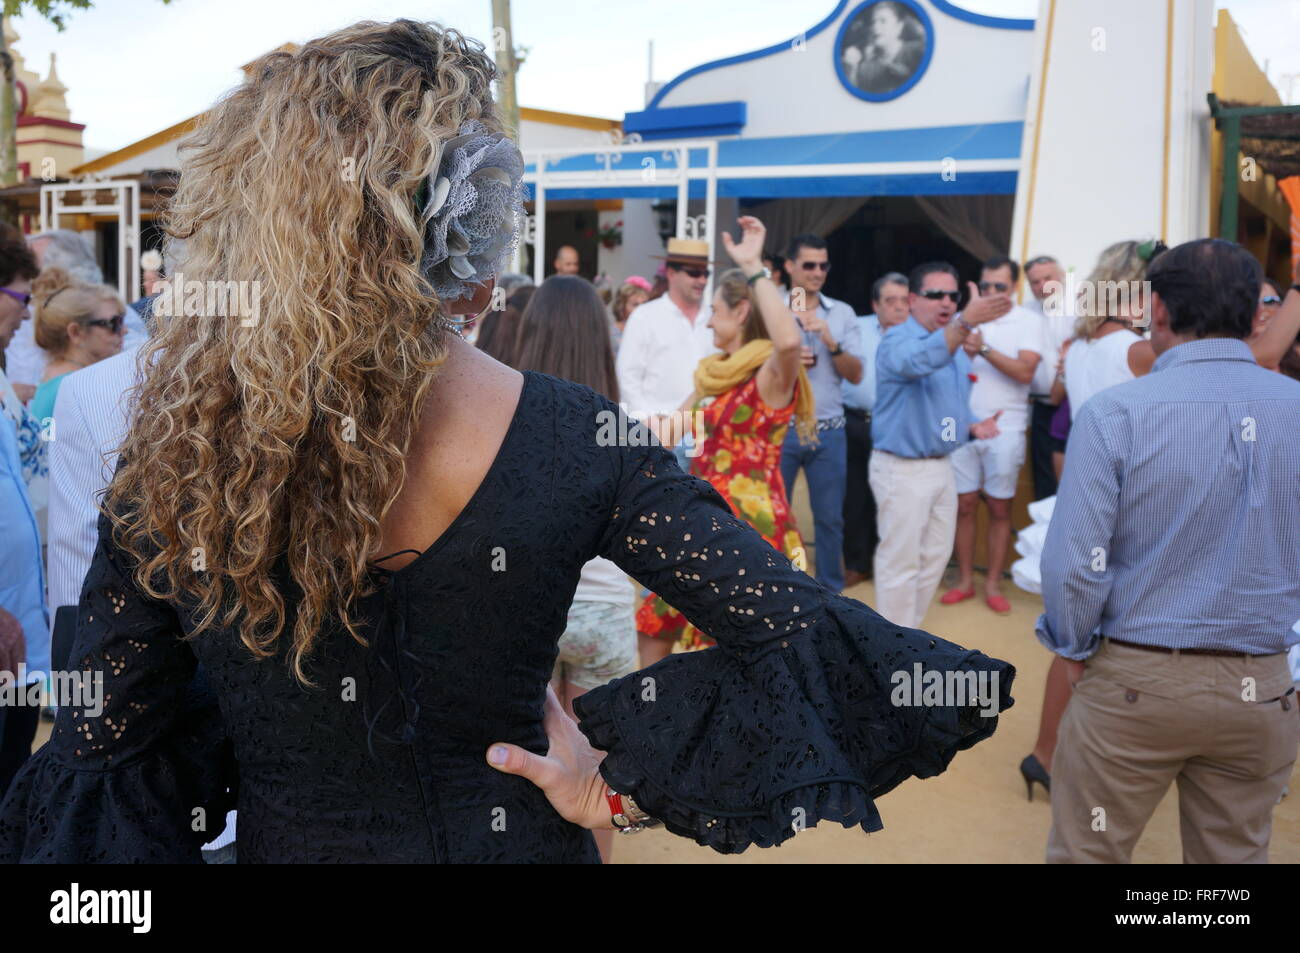 Andalucian Women during the Feria in Jerez -  10/05/2013  -  Spain / Andalusia / Jerez de la Frontera  -  Women - Stock Image